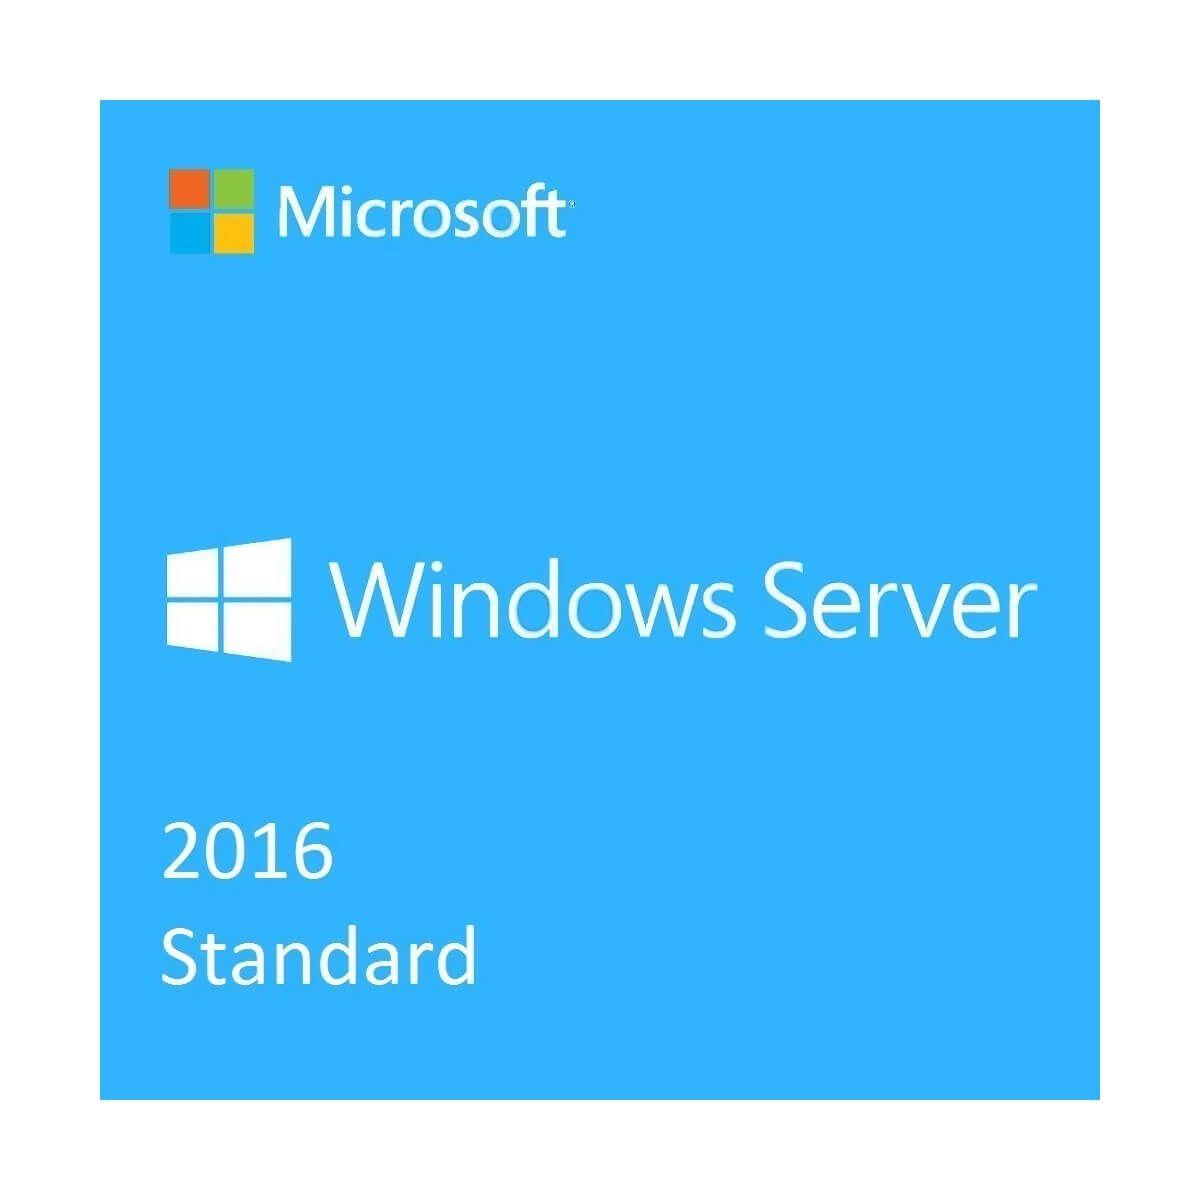 Windows Server 2016 Standard - 1 - Software  - 3 907,96 lei